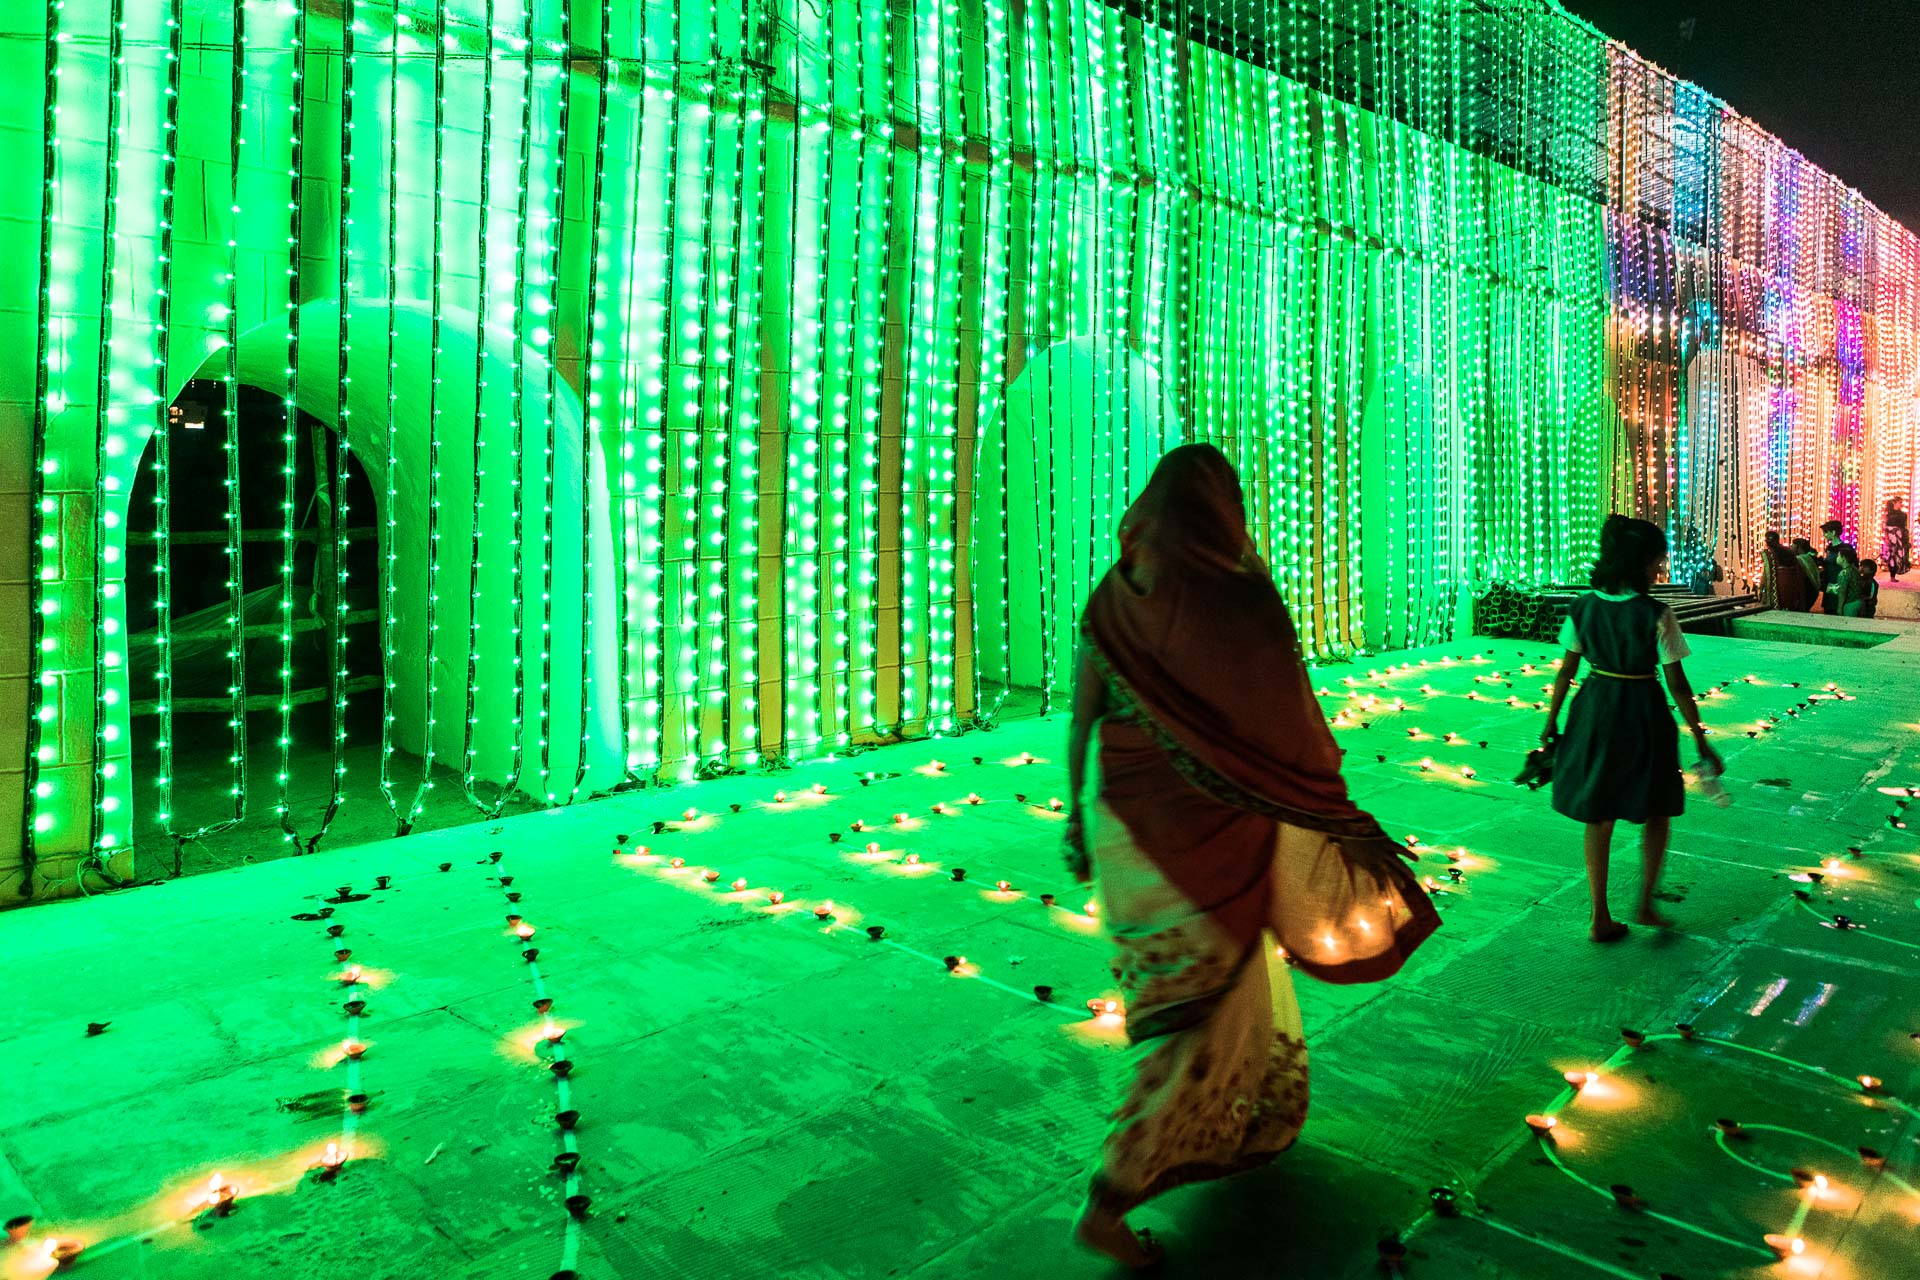 Two people walk past candles on the ground with a heavy green light source in the background